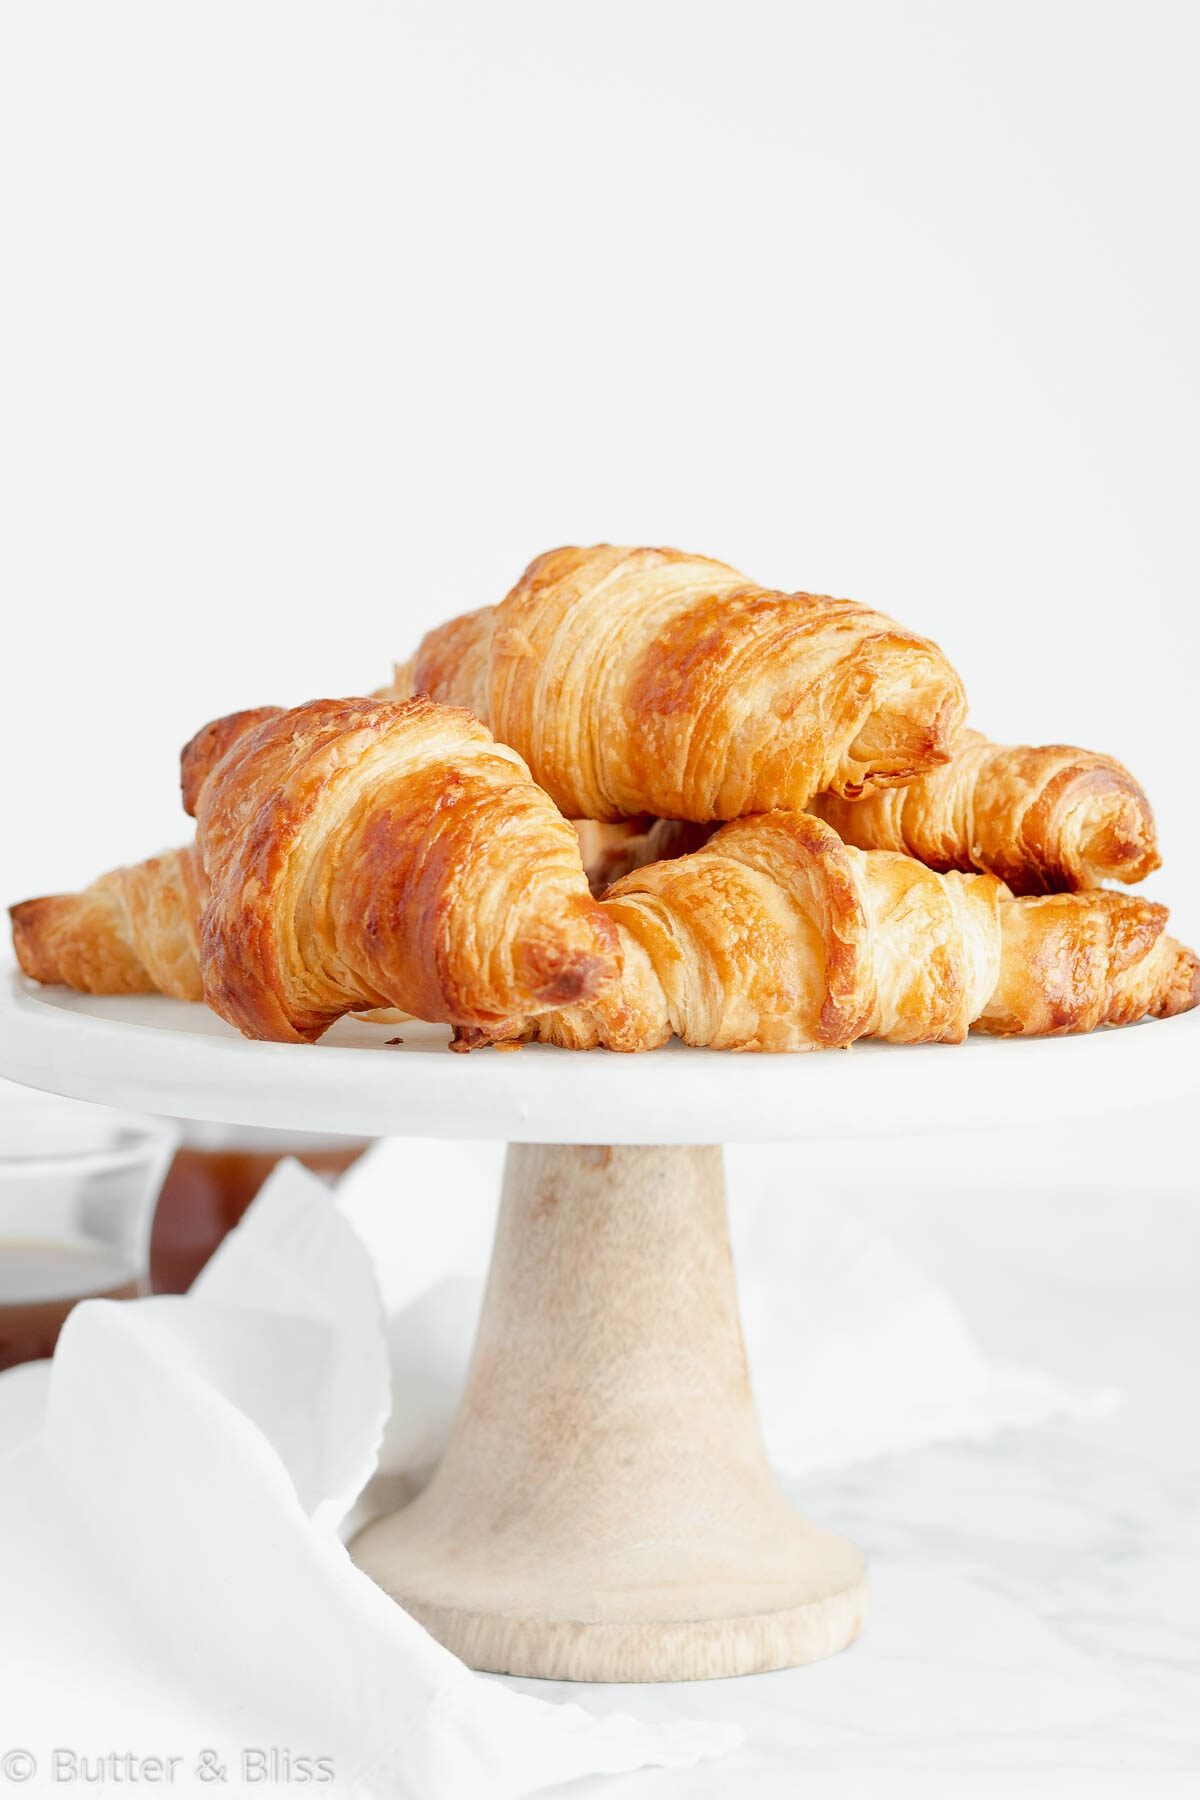 Fresh baked croissants on a serving plate